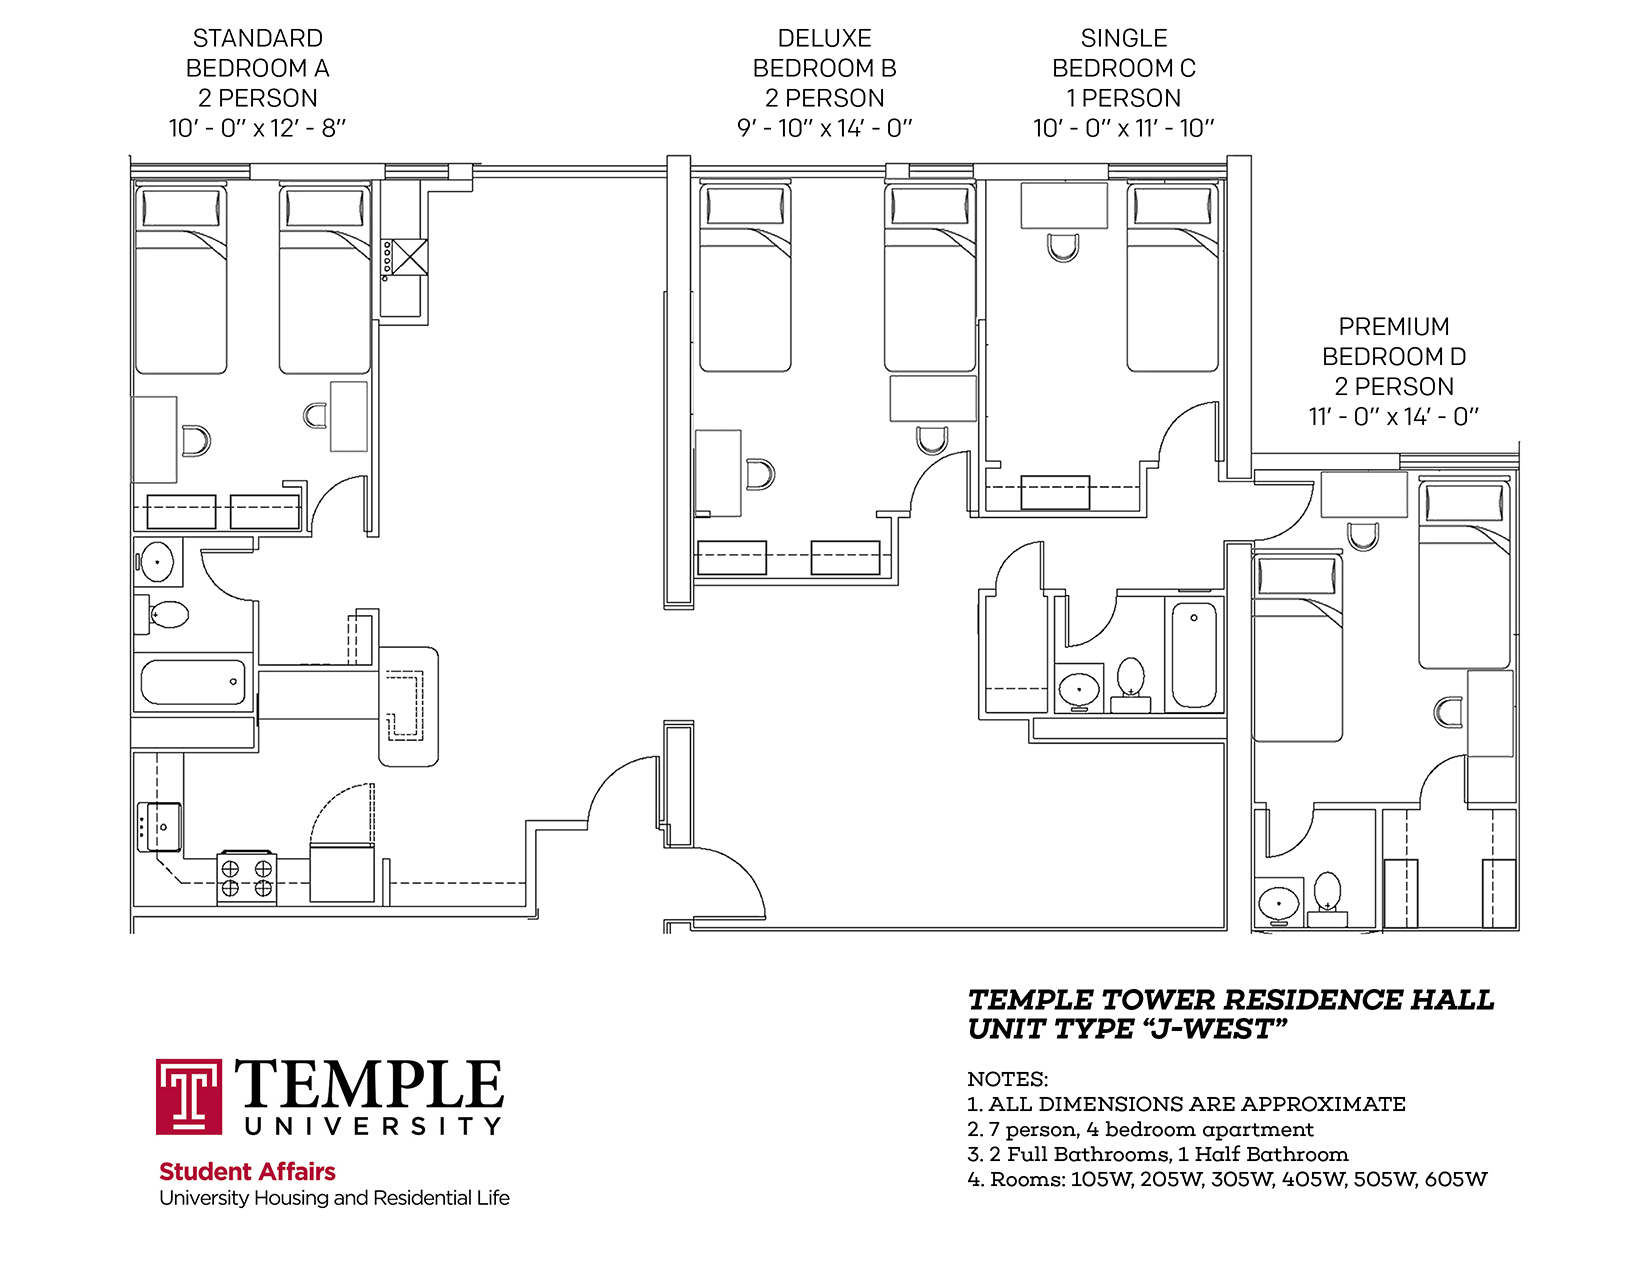 Temple Towers: Unit J West - 7 person, 4 bedroom Apartment